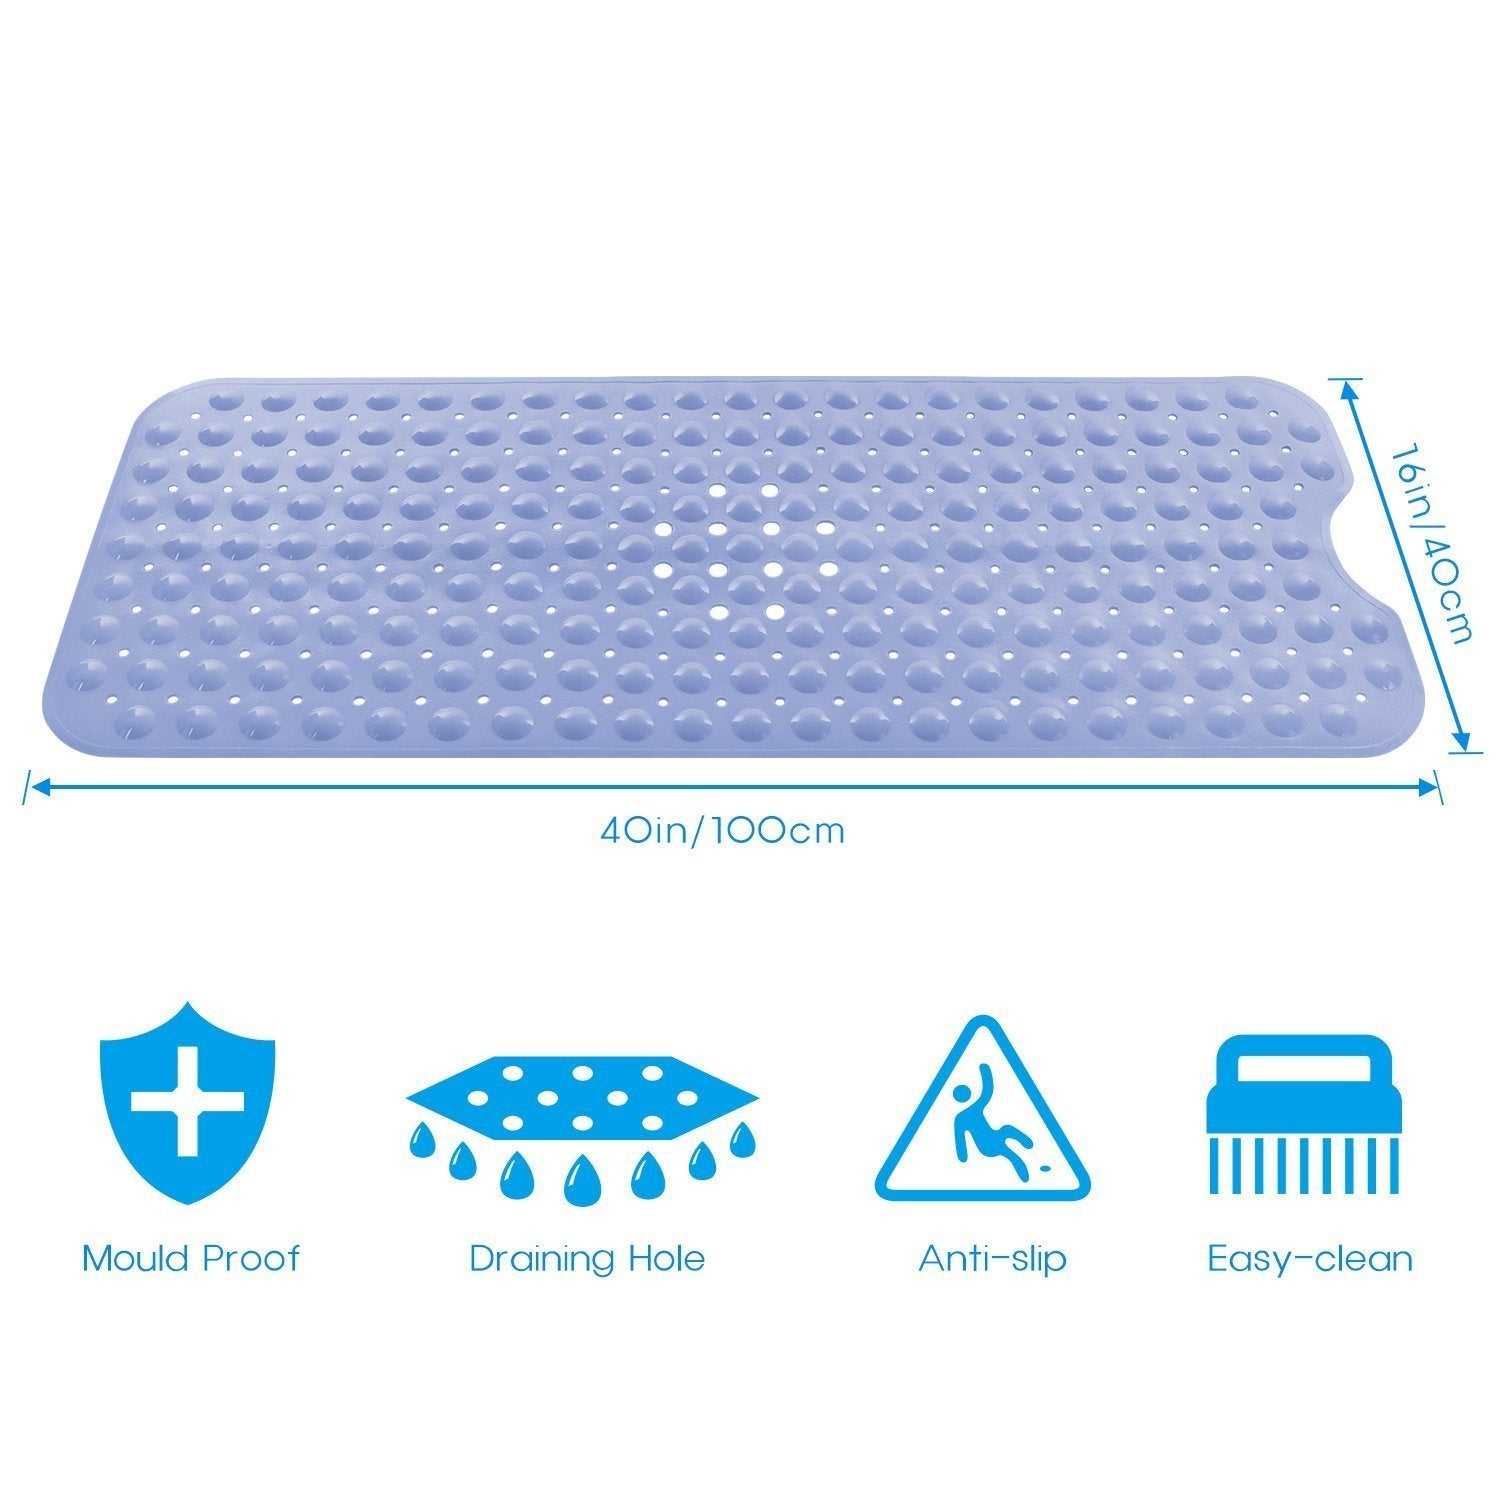 Norcho Anti Slip Bathtub Mat Extra Long for Bathroom with Suction Grip